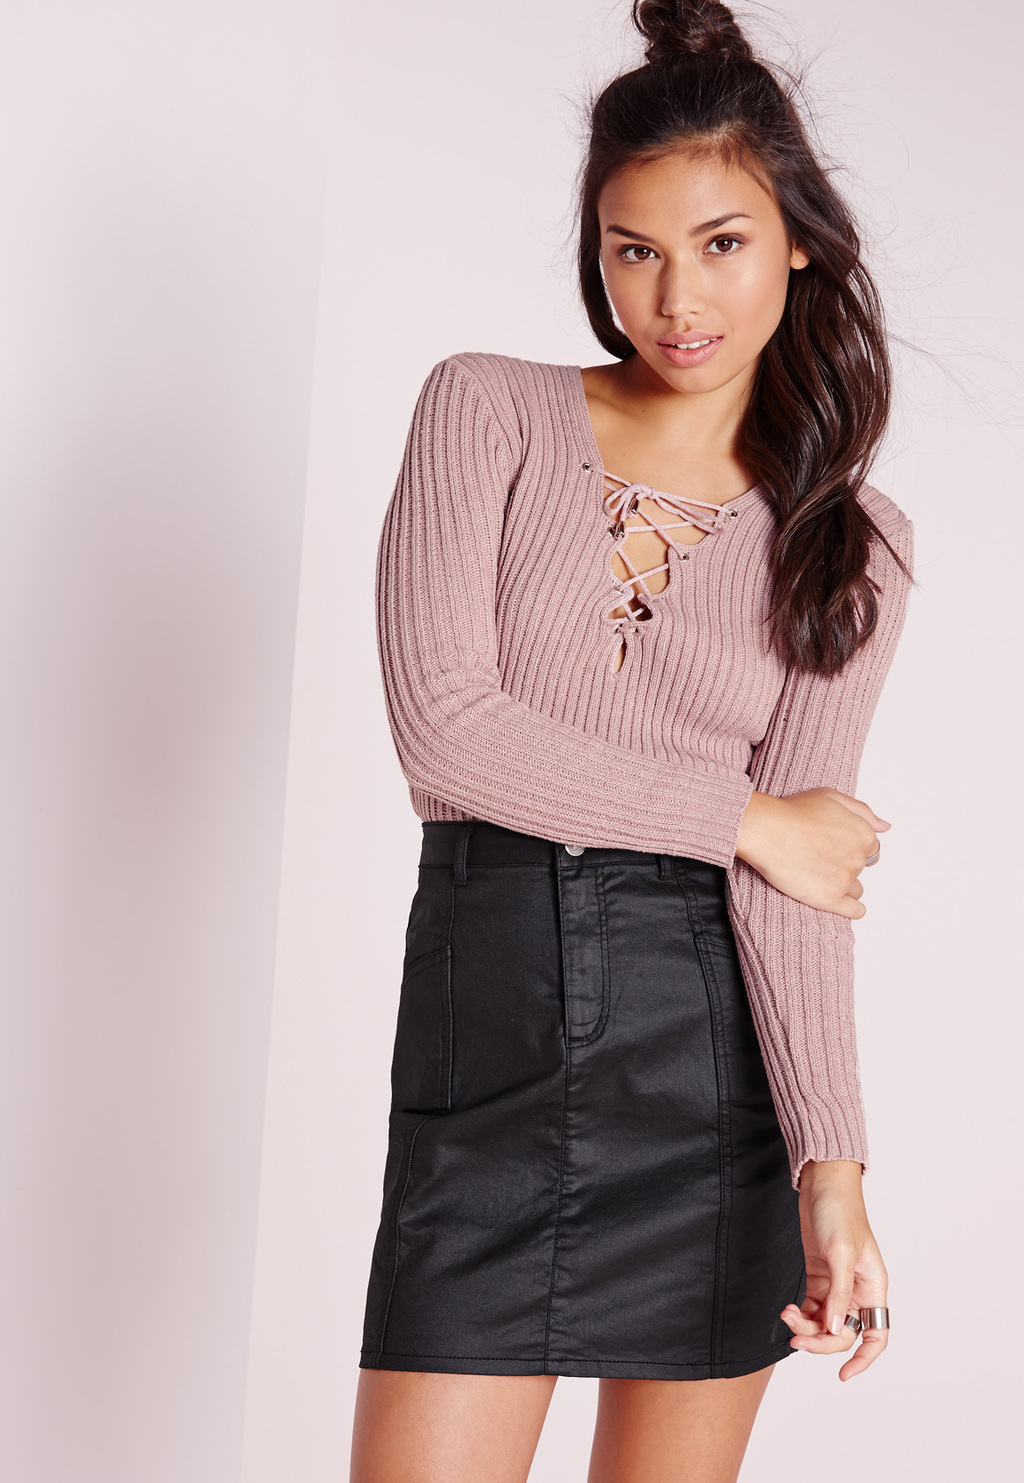 Lace Up Jumper Pink, Pink - pattern: plain; style: standard; occasions: casual, creative work; length: standard; neckline: peep hole neckline; fibres: cotton - mix; fit: slim fit; sleeve length: long sleeve; sleeve style: standard; texture group: knits/crochet; pattern type: knitted - fine stitch; predominant colour: dusky pink; season: s/s 2016; wardrobe: highlight